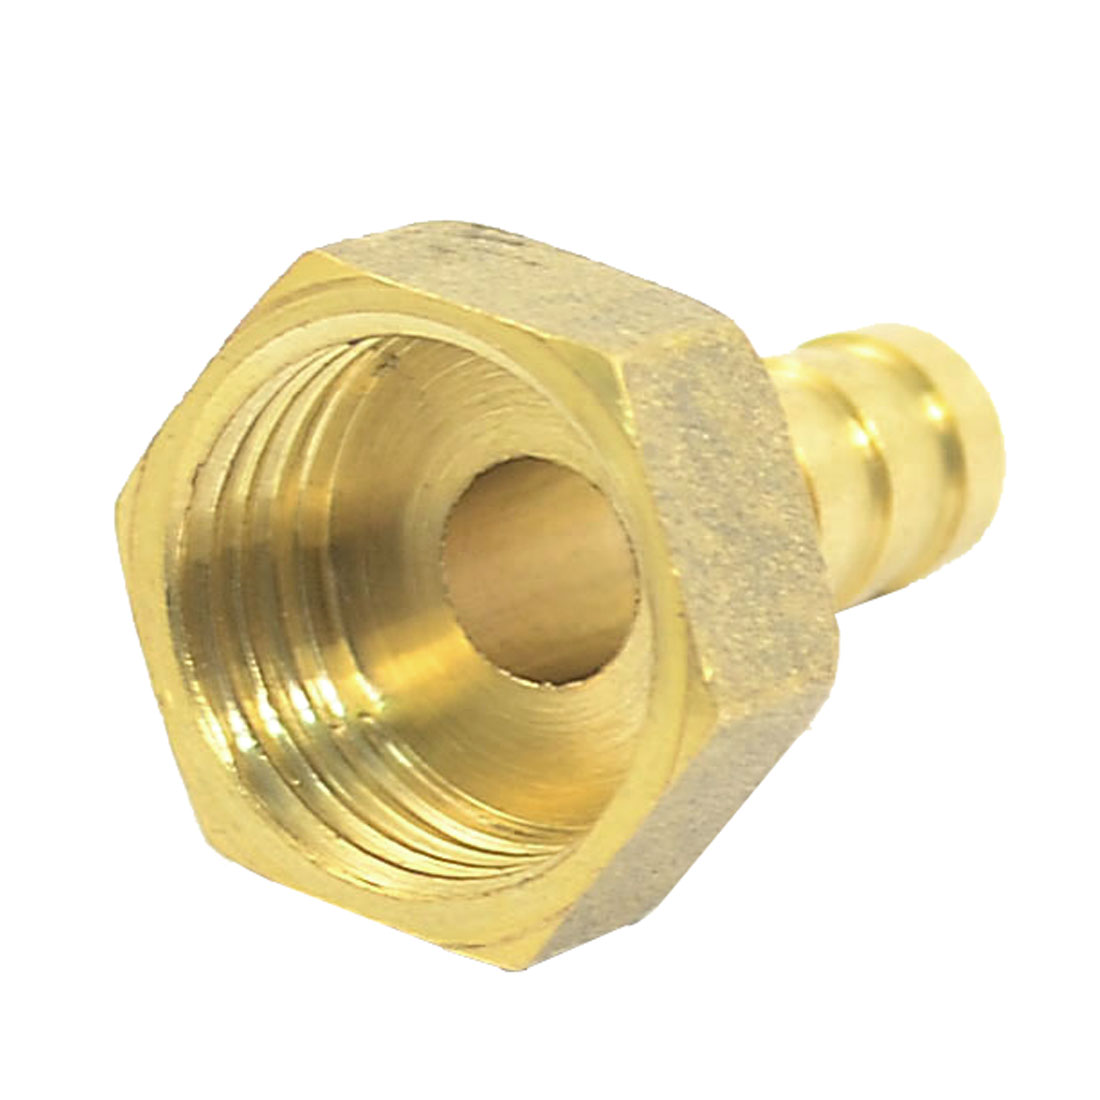 Garden Tap Hose Water Pipe Connector Female Threaded Adaptor Fitting Brass Tone